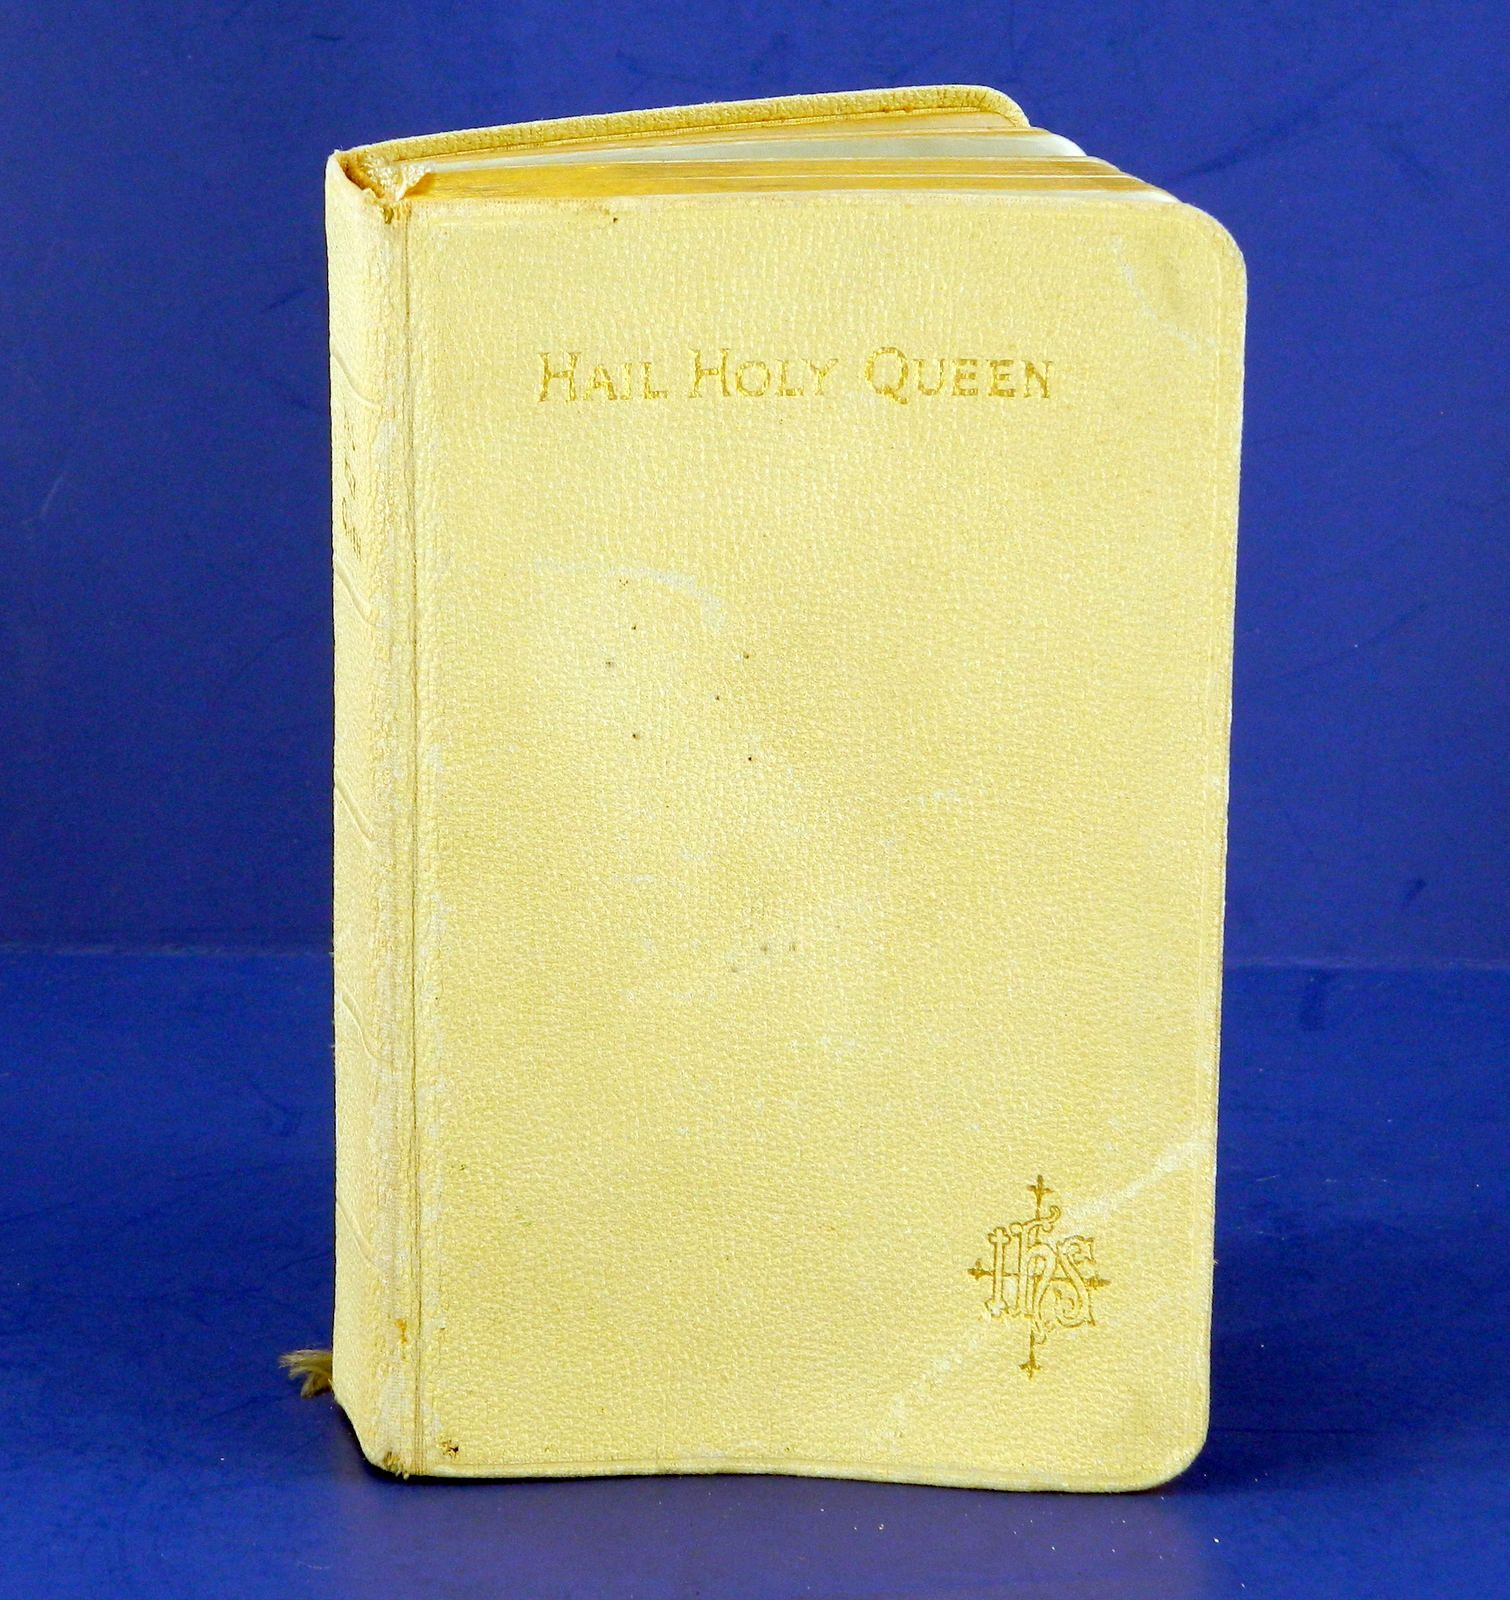 Hail Holy Queen Book Of Prayer Amp Counsel Catholic Girls